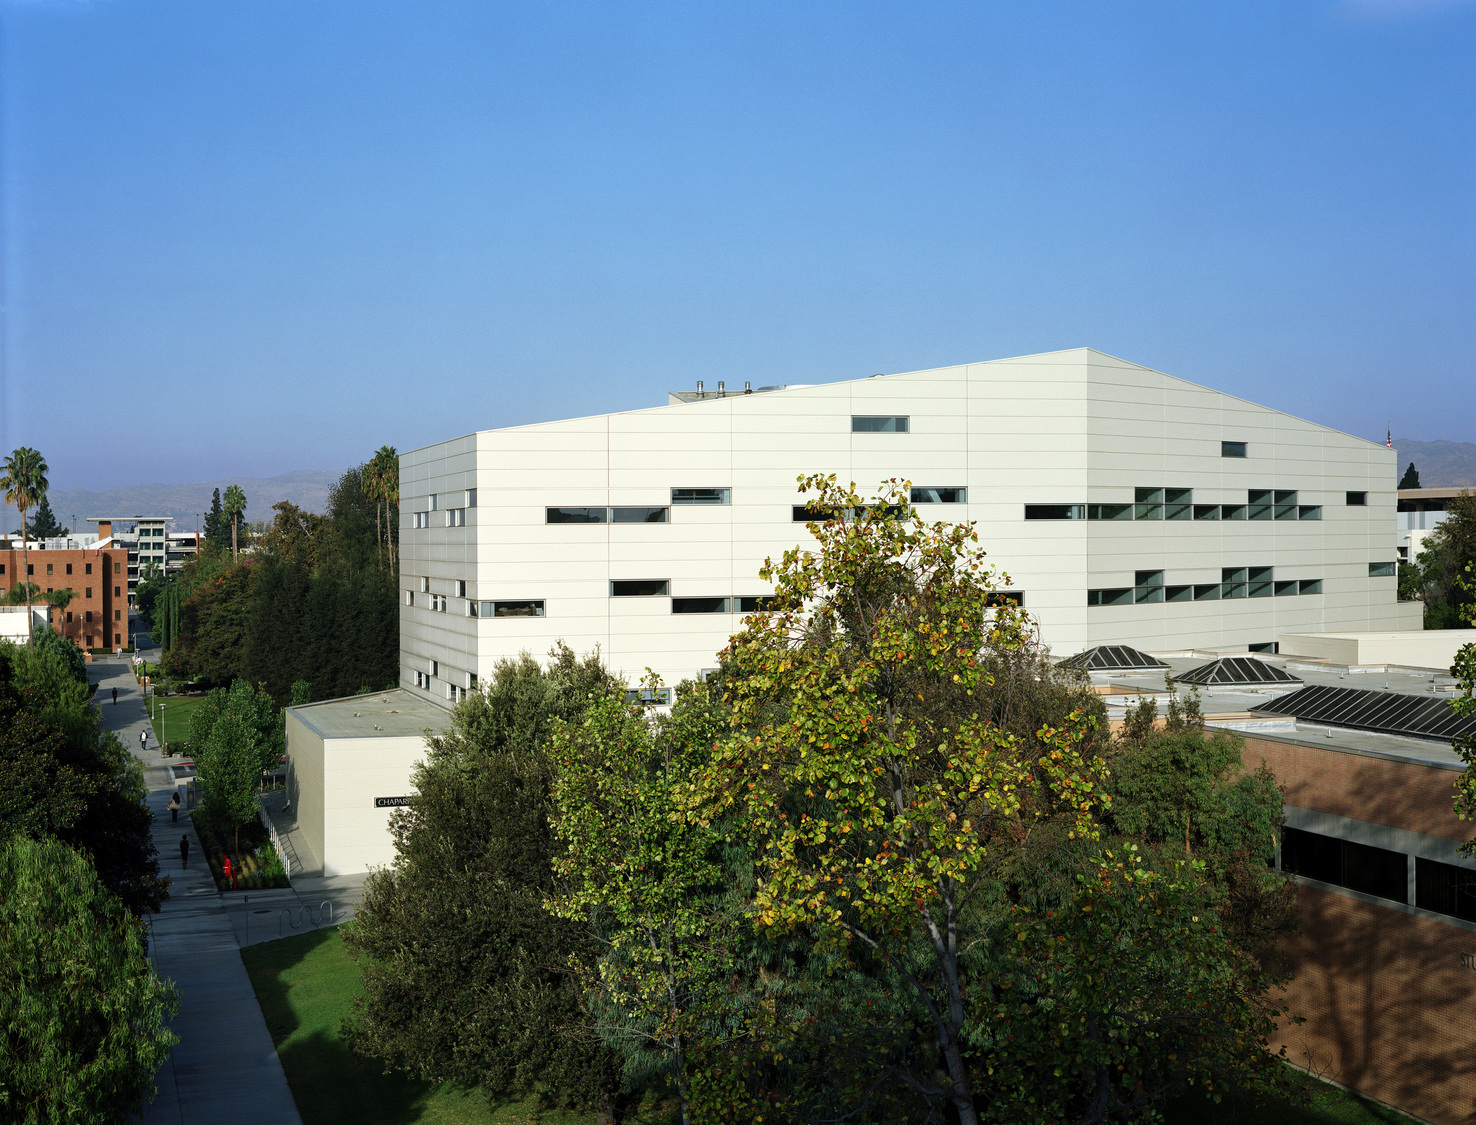 California State University, Northridge, Chaparral Hall, Northridge, CA